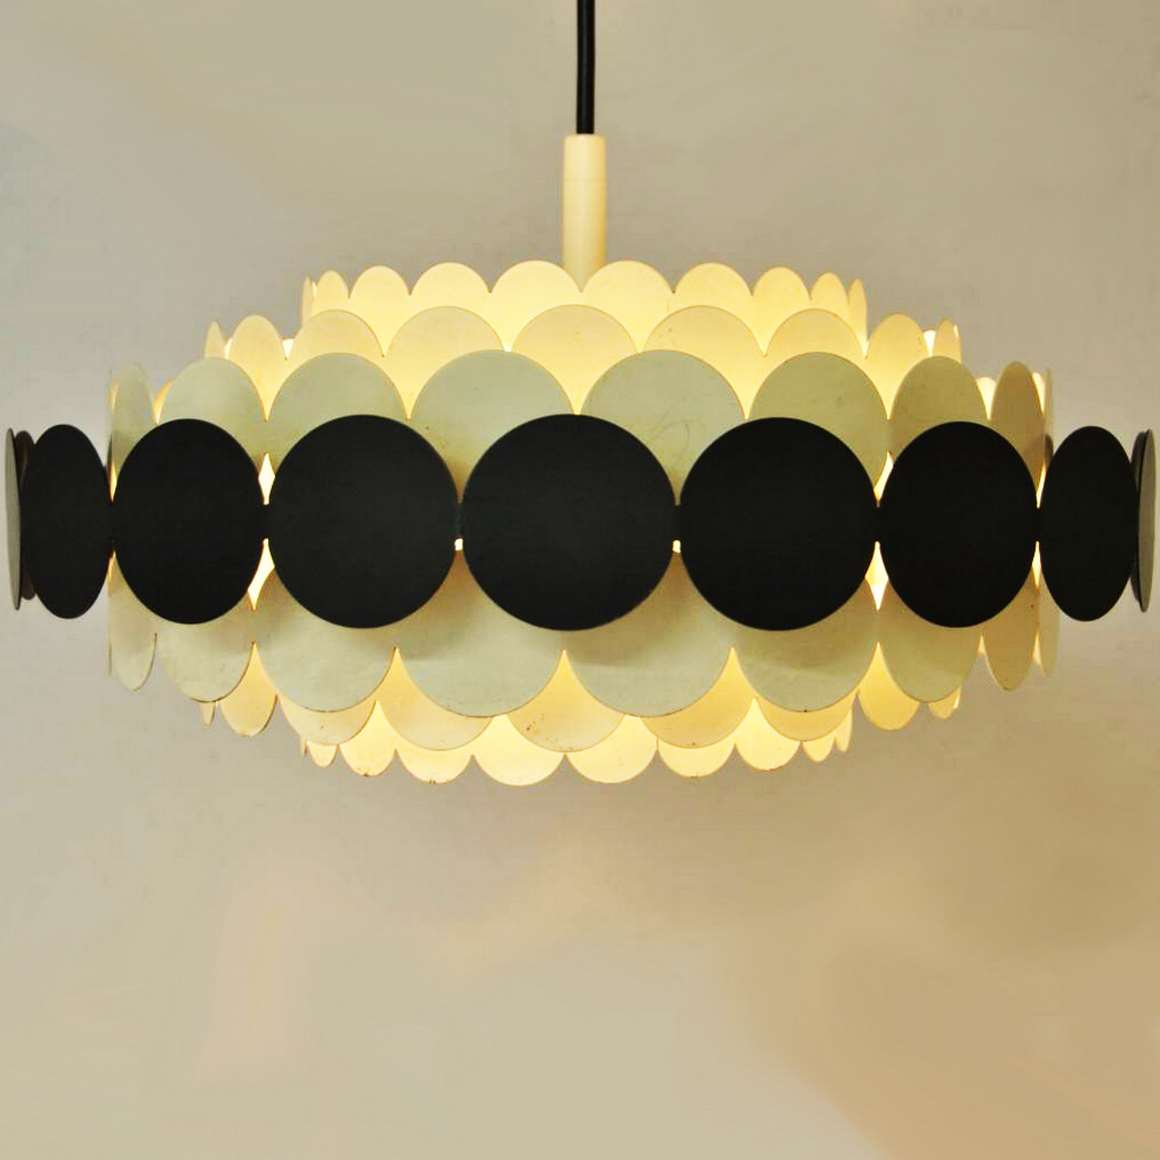 Doria Metal Pendant Light - Black & White